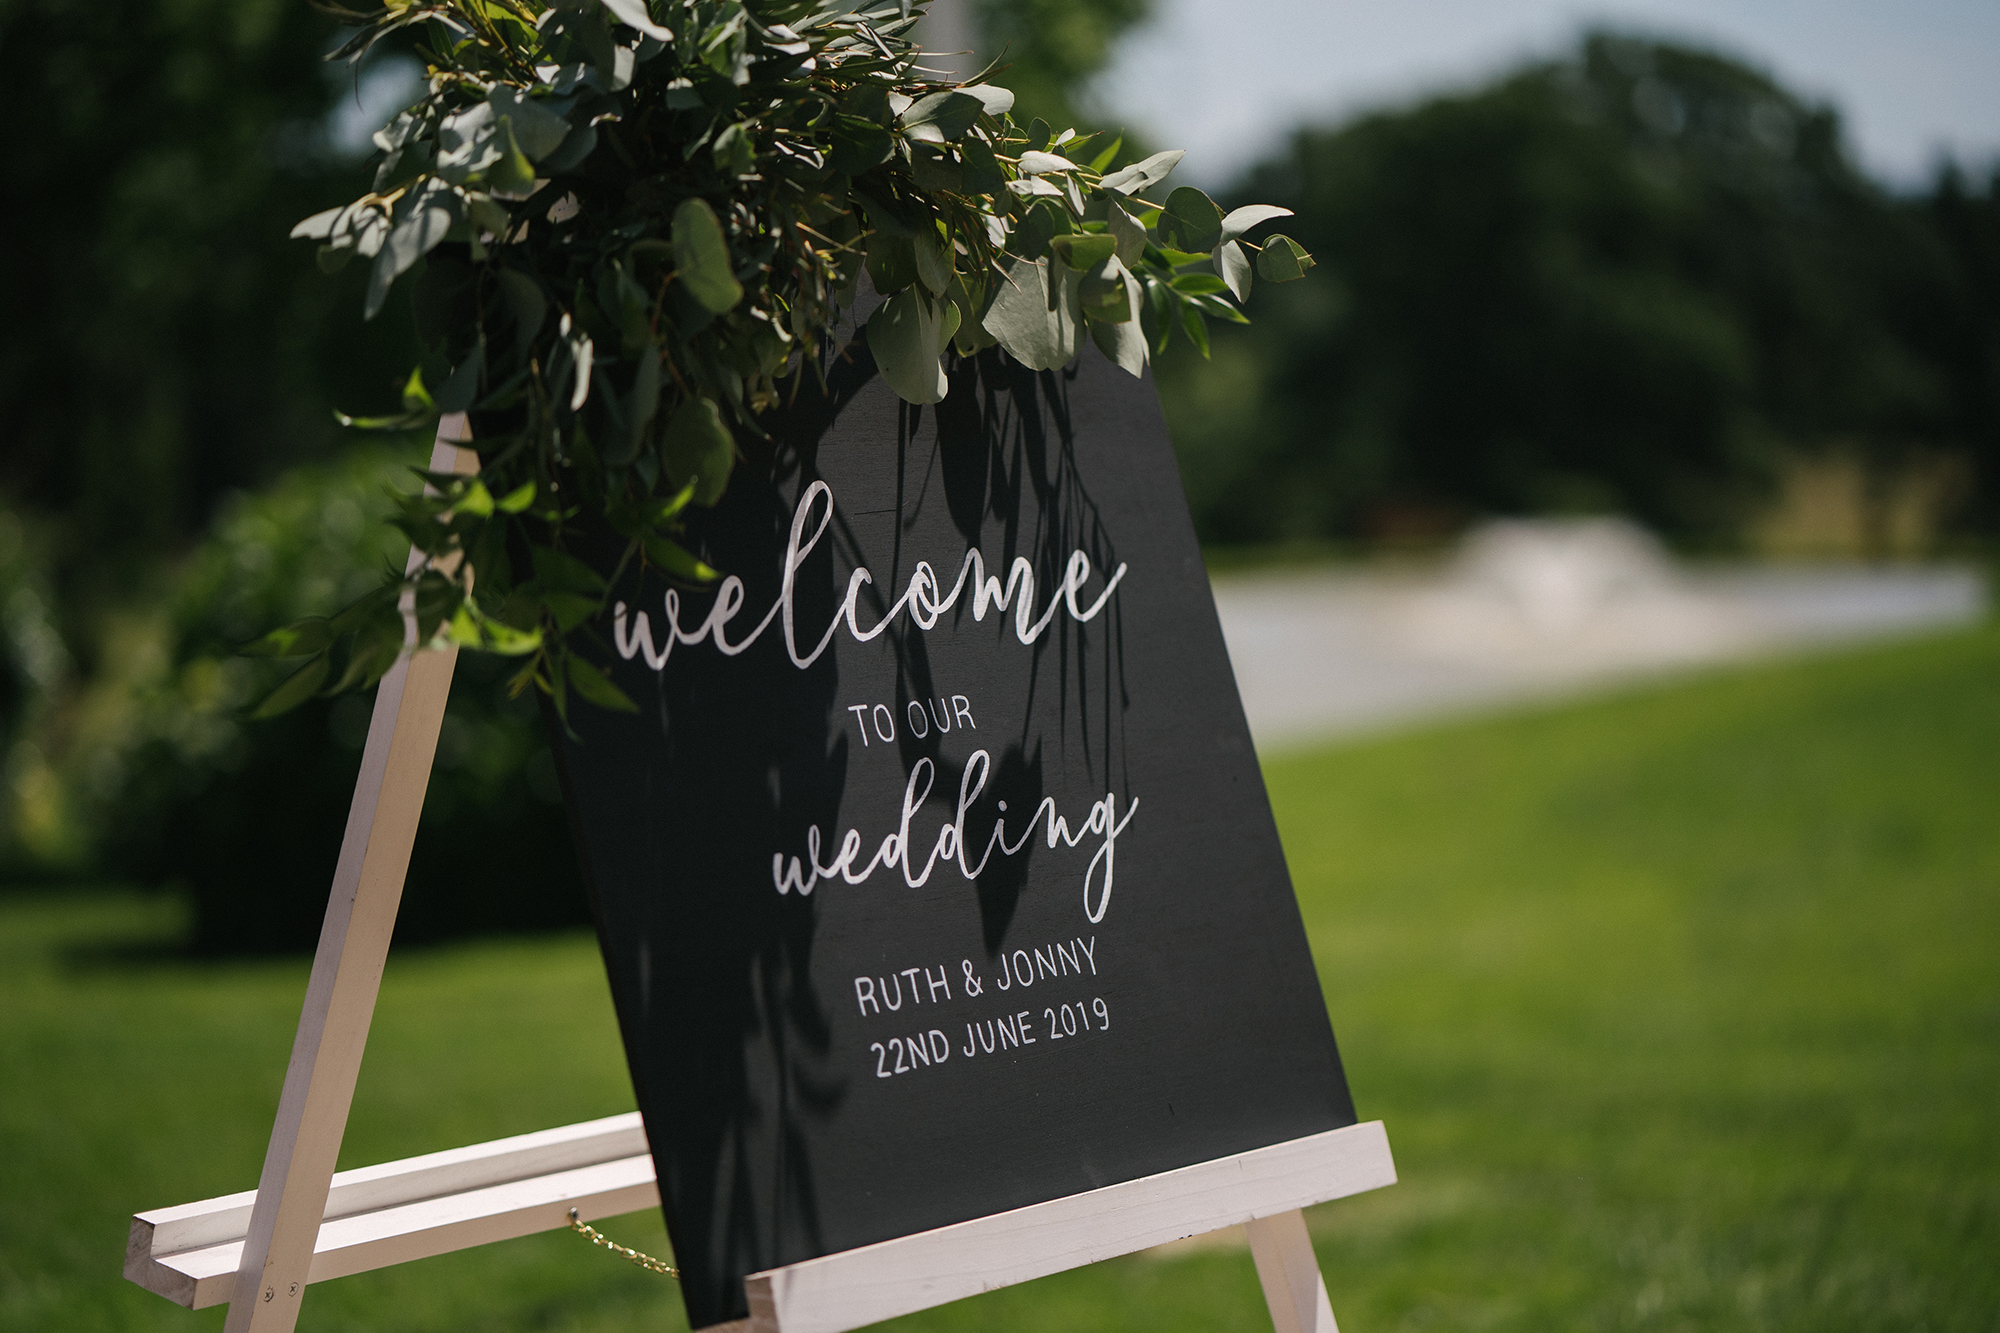 Welcome to our wedding sign at the entrance to Upton Barn